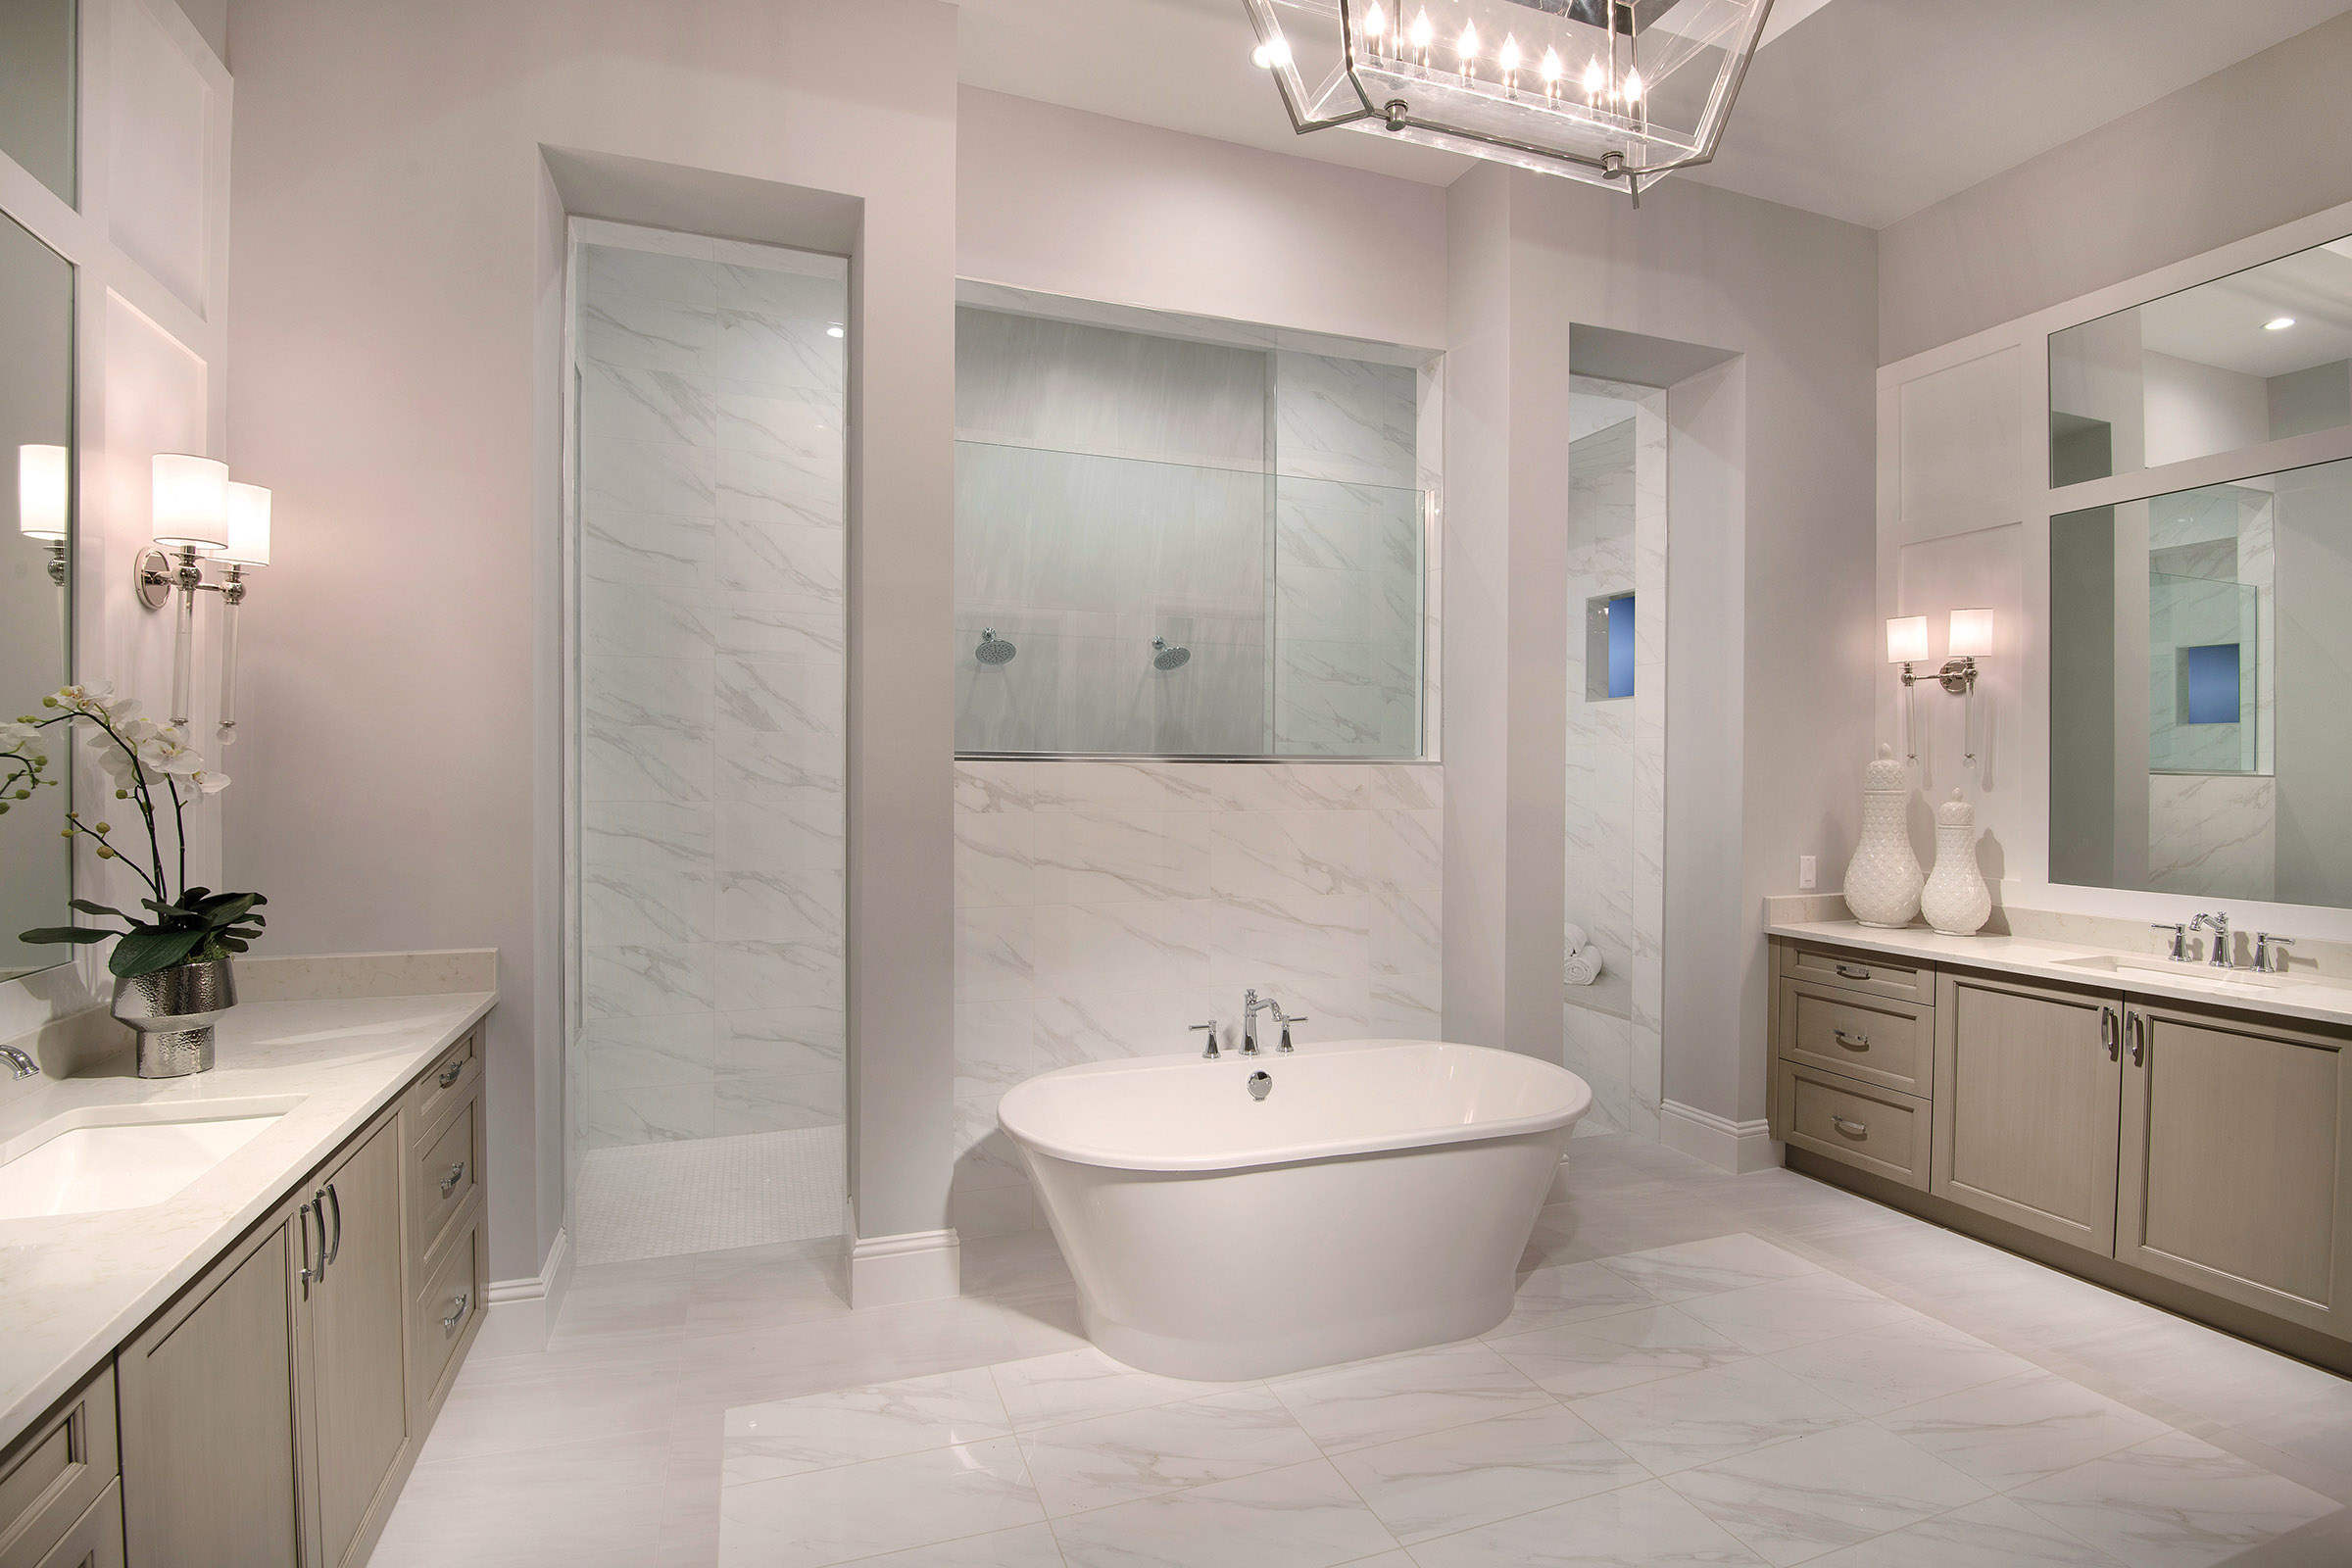 The free-standing soaking tub and tile and glass accent wall is the focal point in the master bath. Behind the walk-in shower, there are dual seats, modern shower features, and decorative tile accents. His and hers matching vanities, topped with large quartz counters, feature custom framed mirrors and sconce lighting.